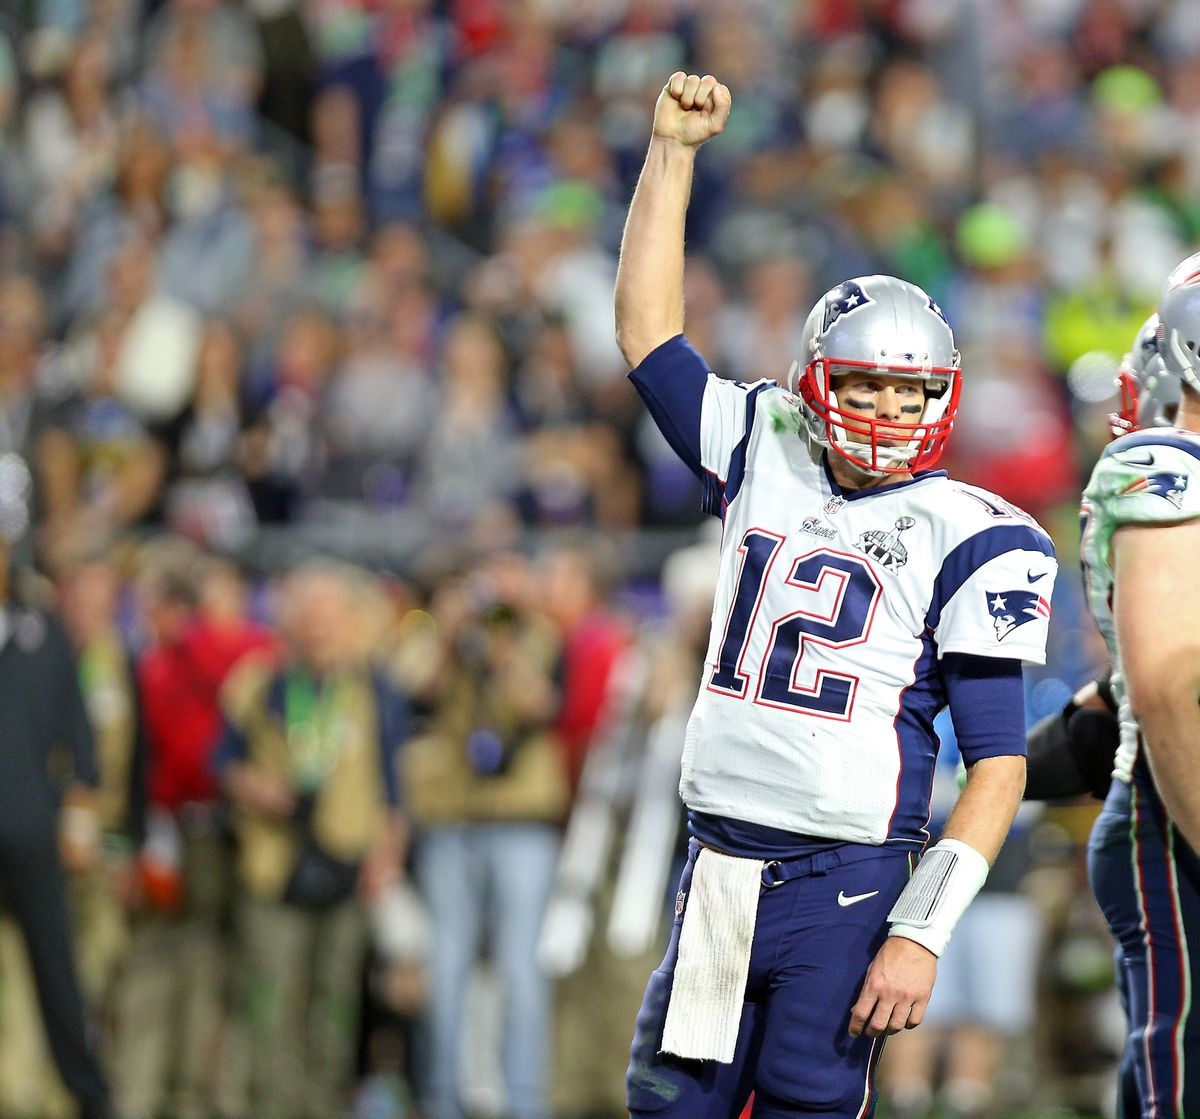 (020215 Glendale, AZ) New England Patriots quarterback Tom Brady signals the win at the end of the game as the New England Patriots take on the Seattle Seahawks in Super Bowl XLIX in Glendale, AZ. (Monday,February 2, 2015). Staff Photo by Nancy Lan